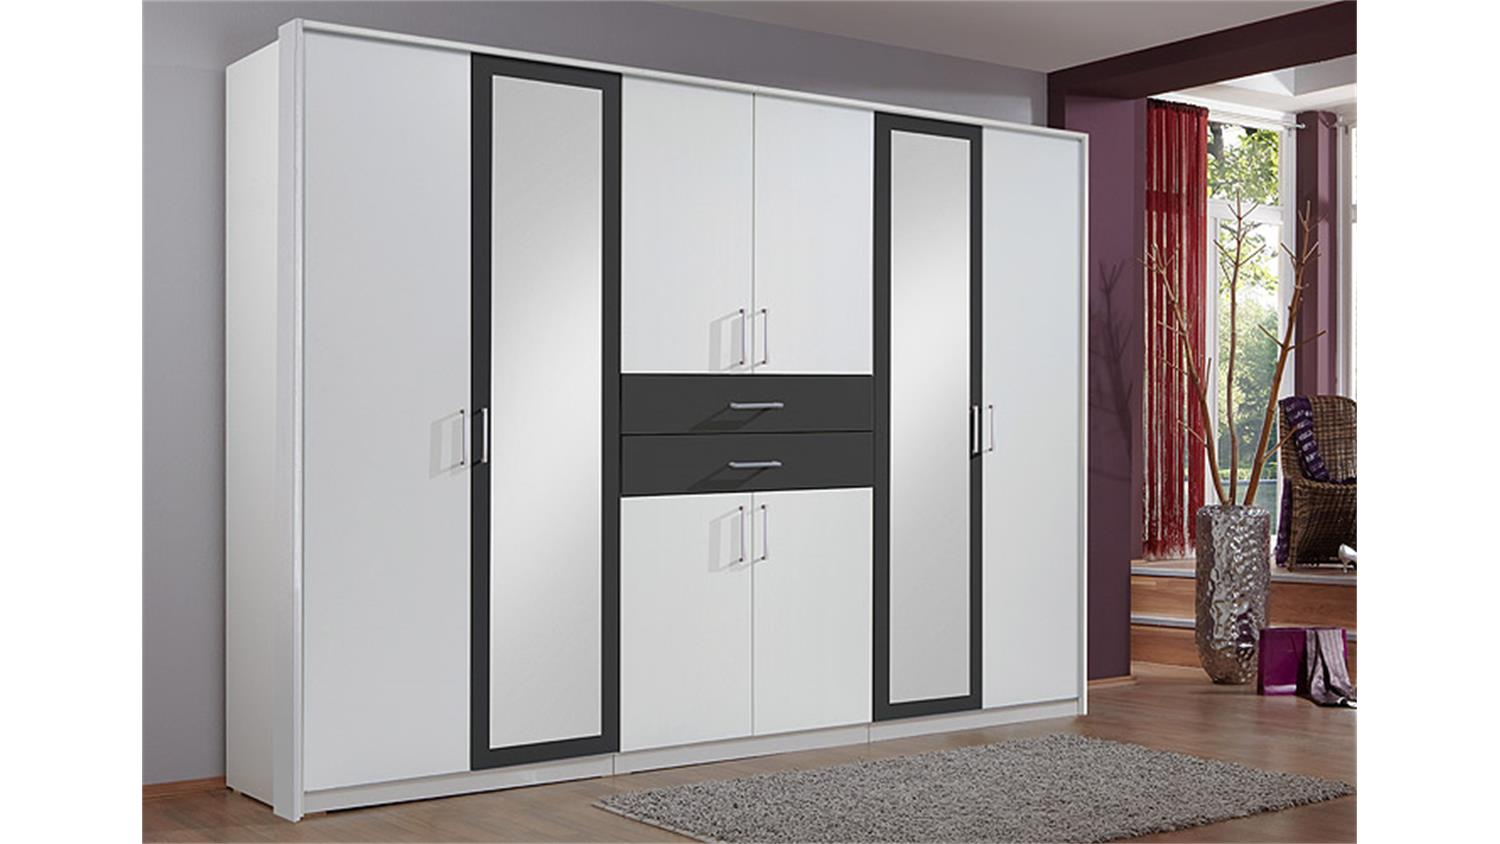 kleiderschrank 270cm diver schrank wei absetzungen anthrazit. Black Bedroom Furniture Sets. Home Design Ideas